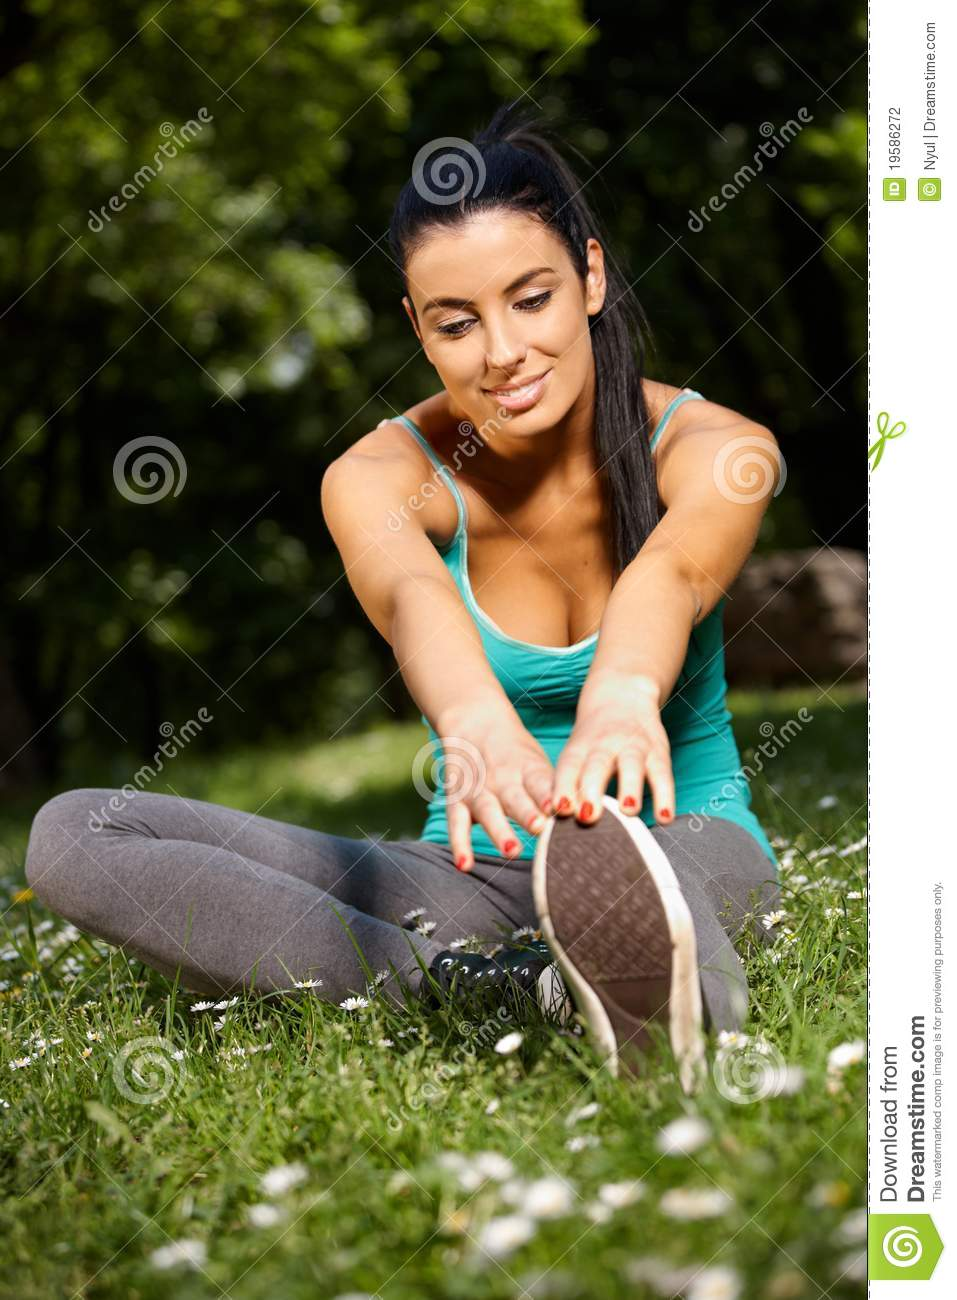 Smiling woman stretching in park